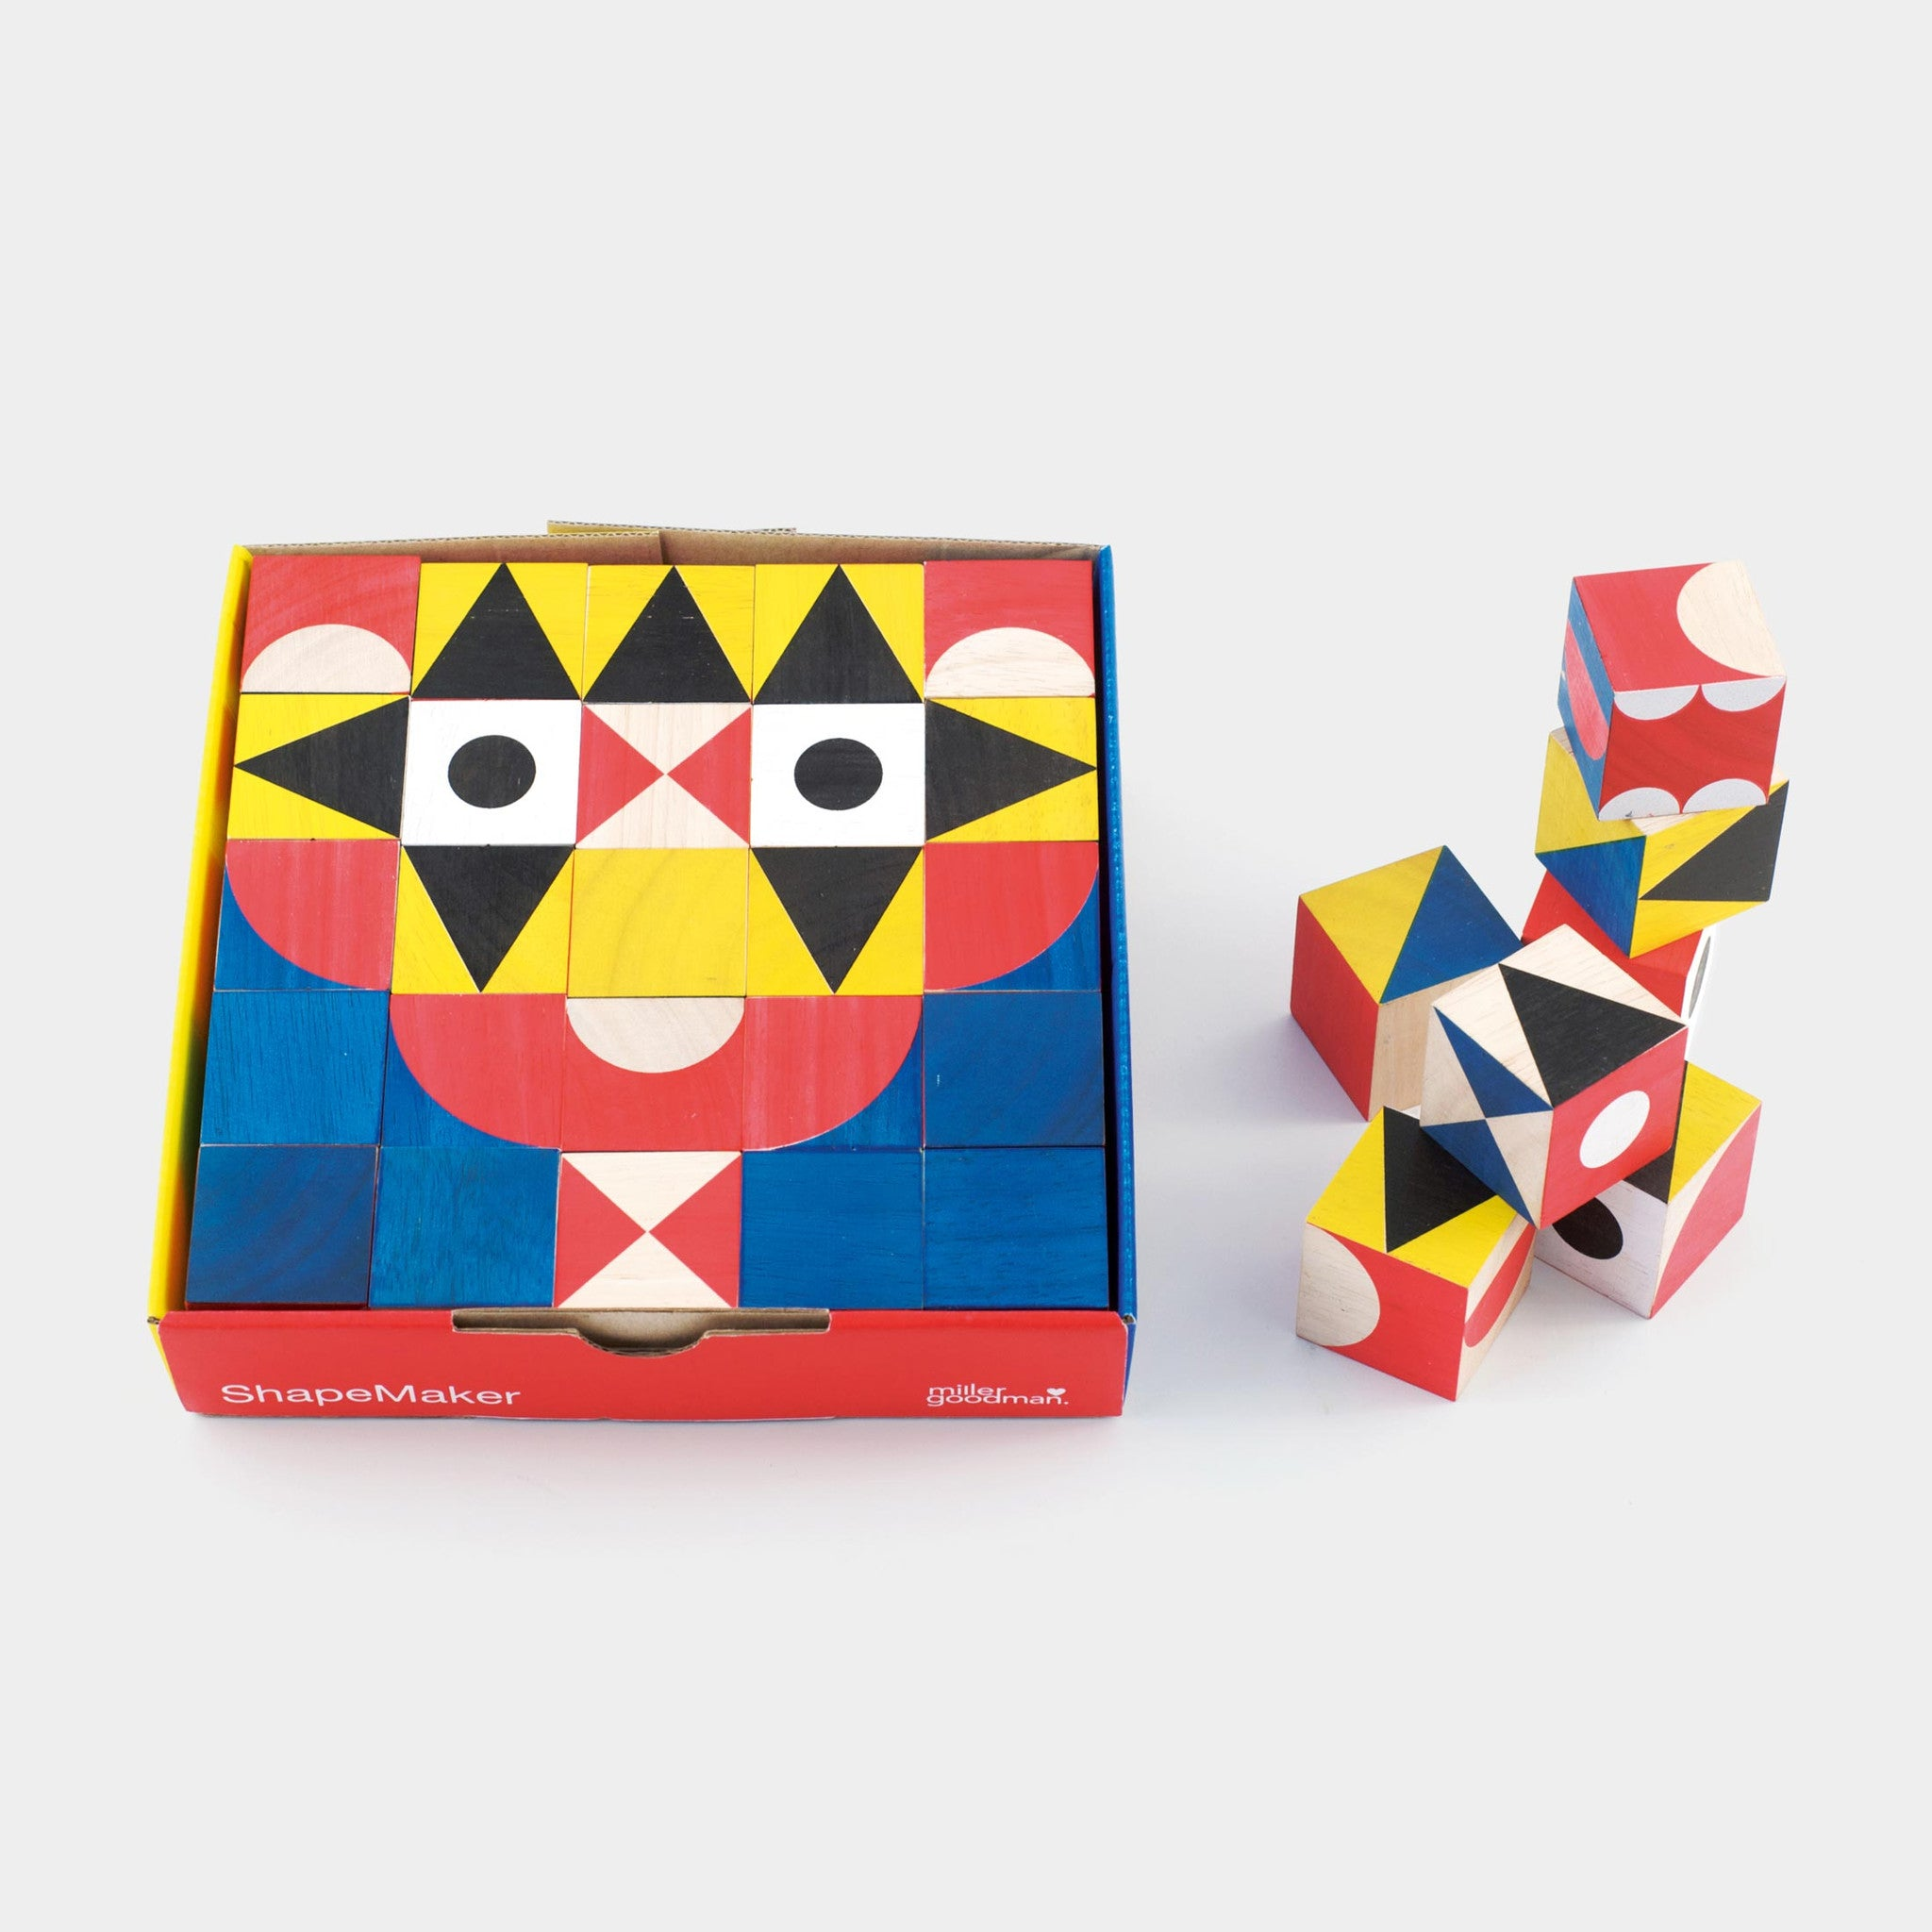 Miller Goodman's ShapeMaker is a set of 25 colourful, hand printed, environmentally friendly hardwood blocks made of replenishable rubber wood.